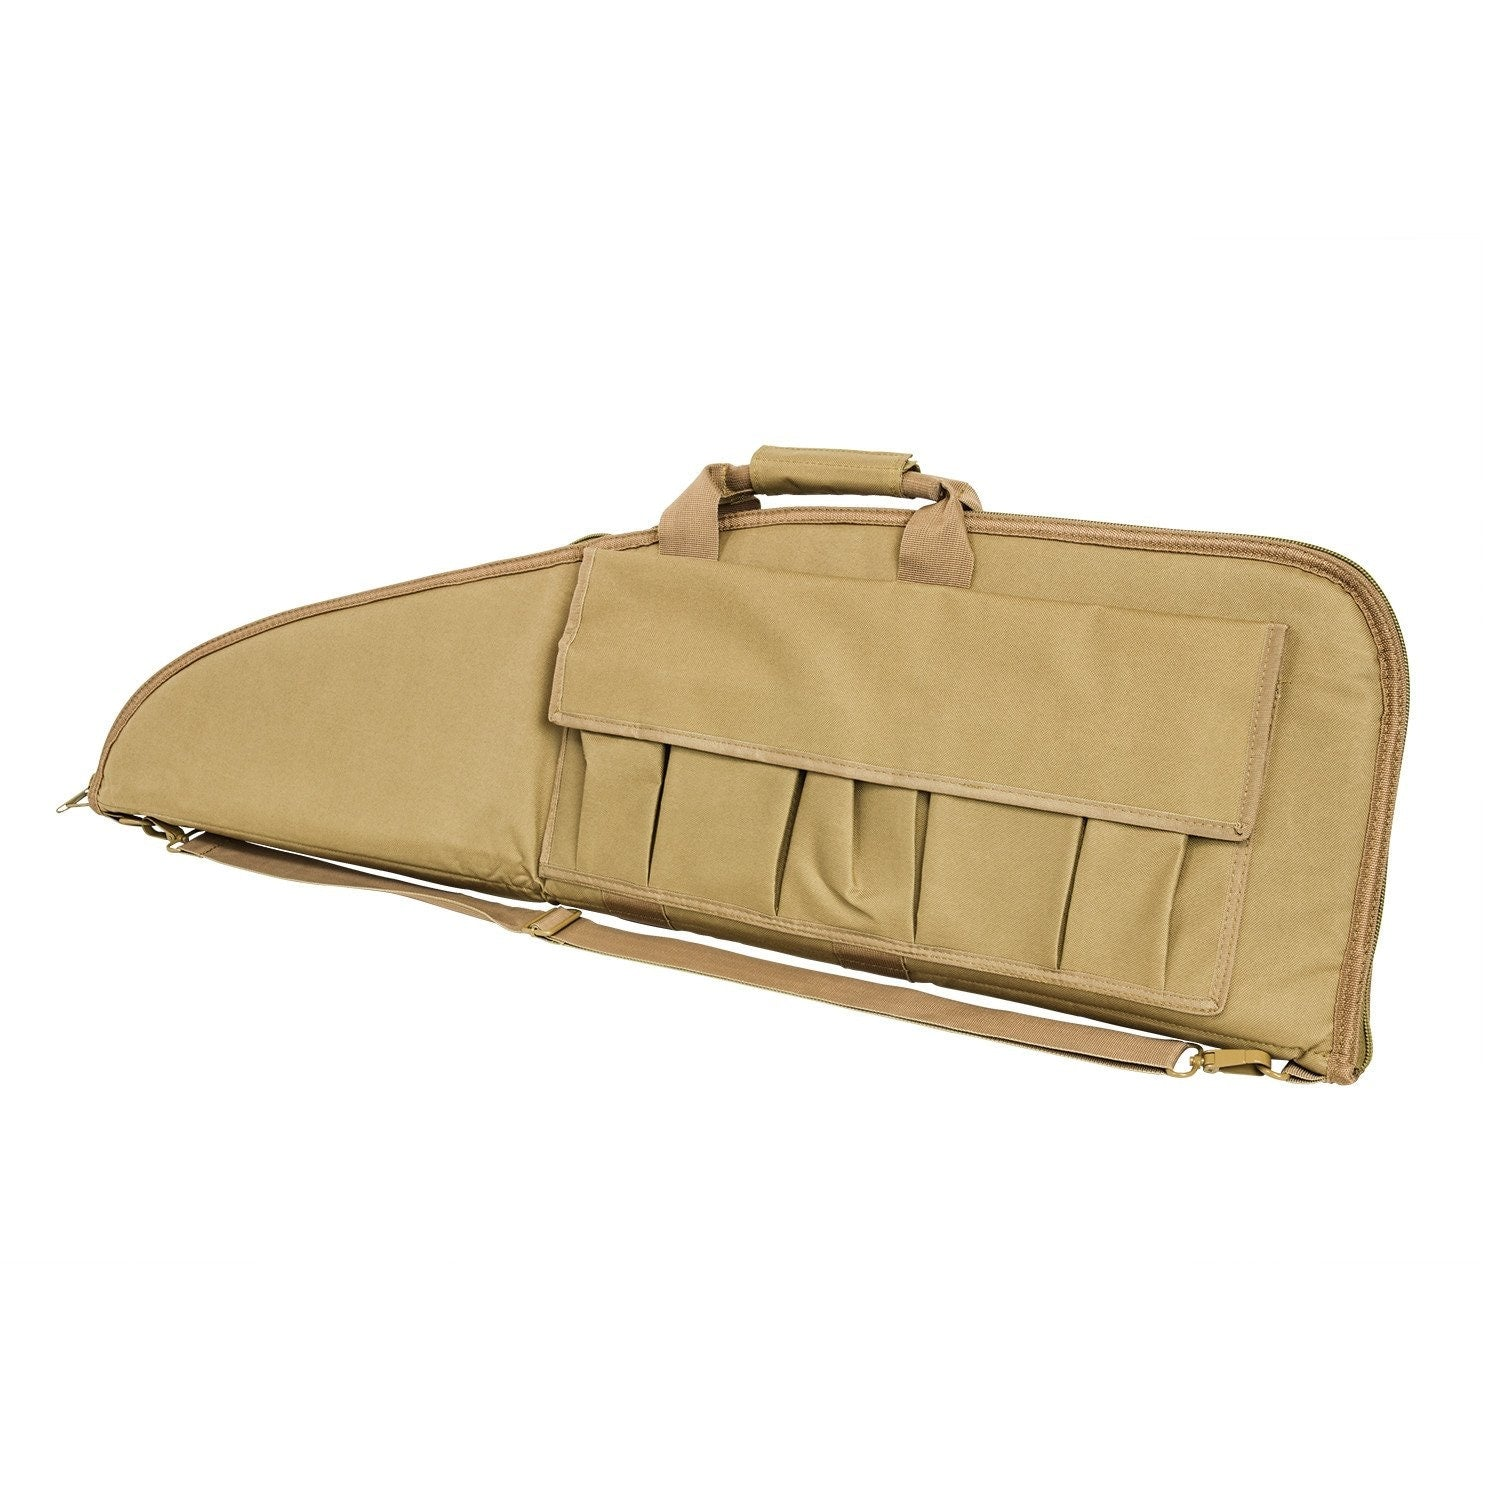 Rifle Case (36 X 13) - Tan - Rifle/carbine Cases - Vism - Colonel Mustard